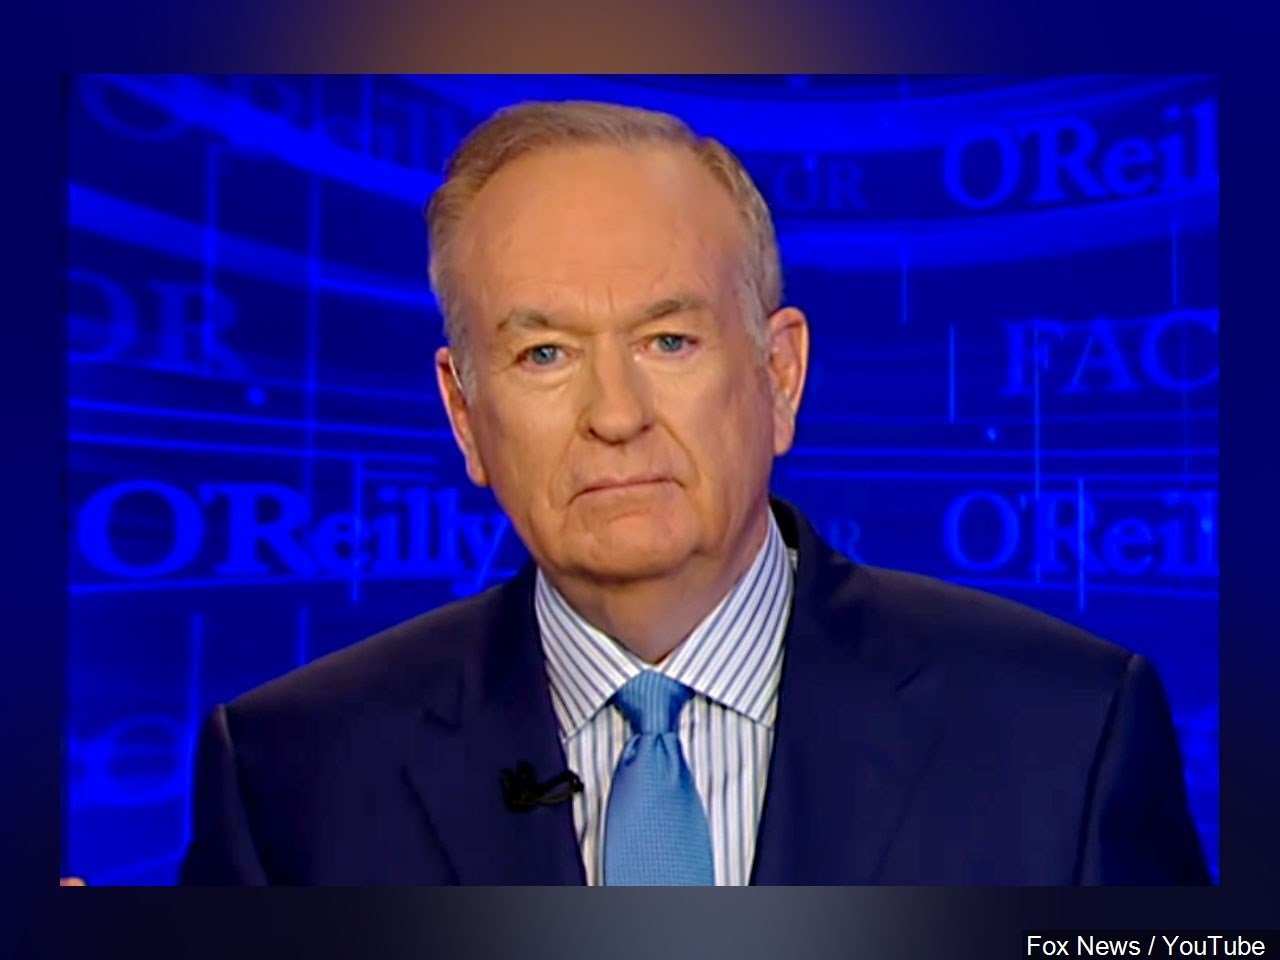 Bill O'Reilly wont return to Fox News / Courtesy of MGN Online